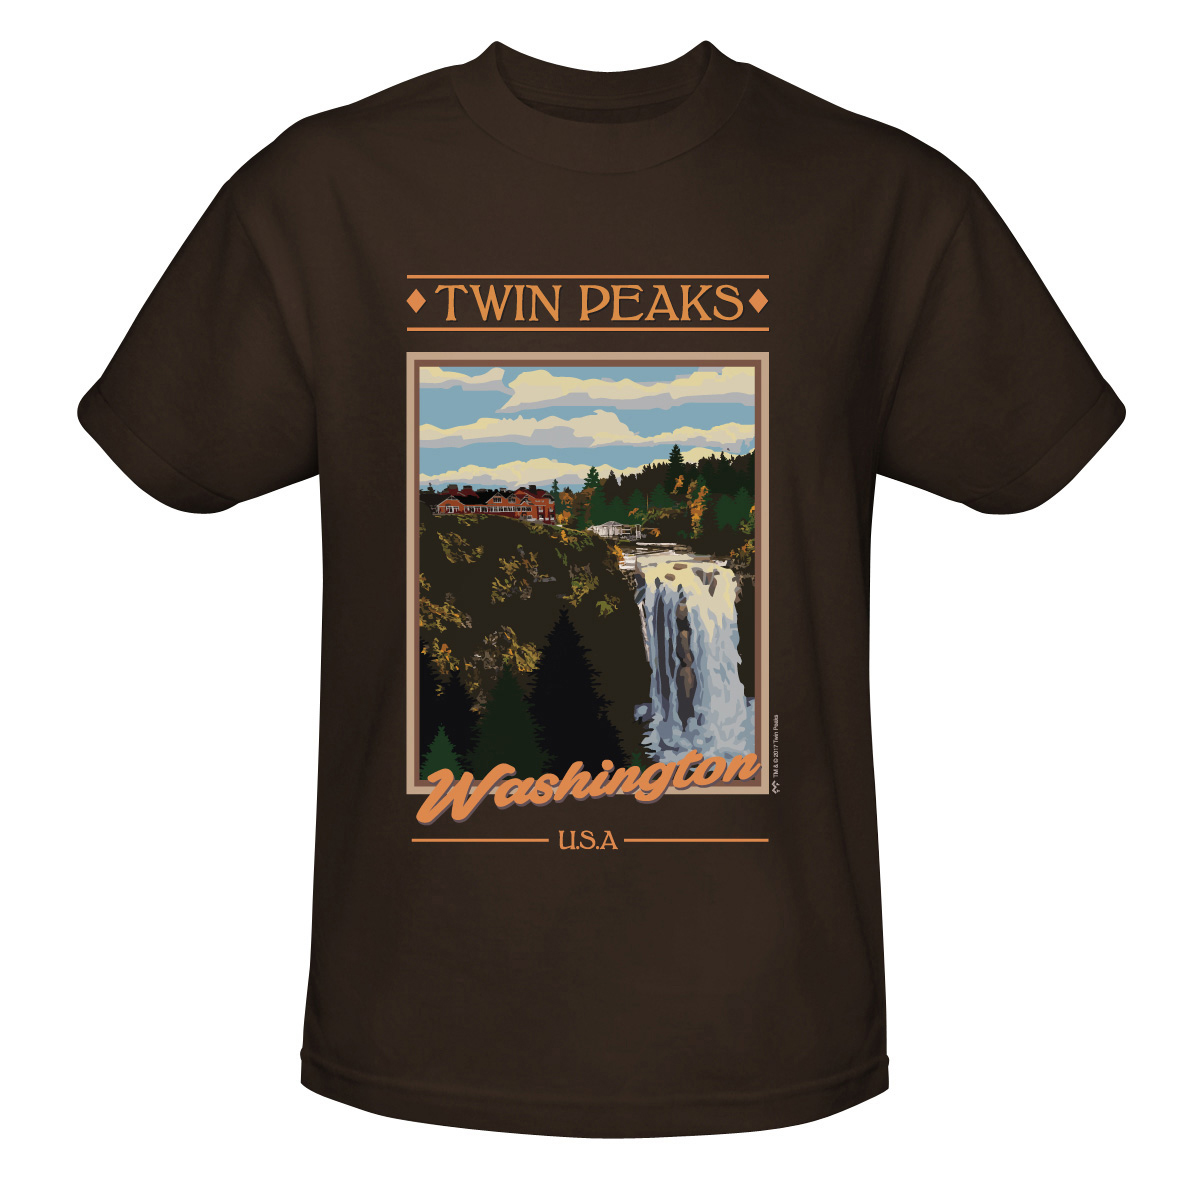 Twin Peaks Vintage Poster Style T-Shirt